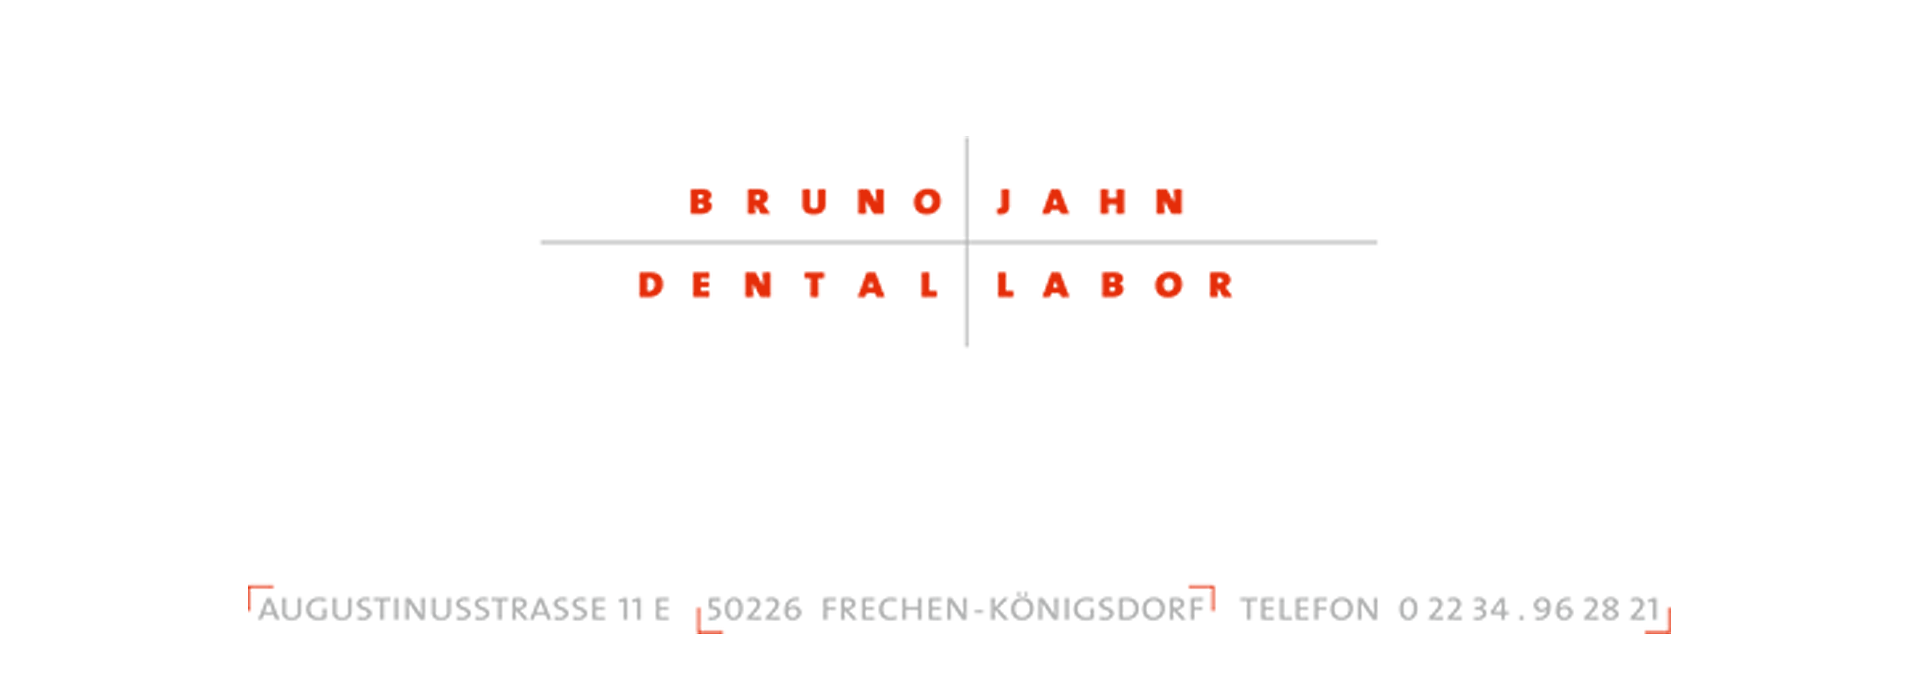 Dentallabor Bruno Jahn